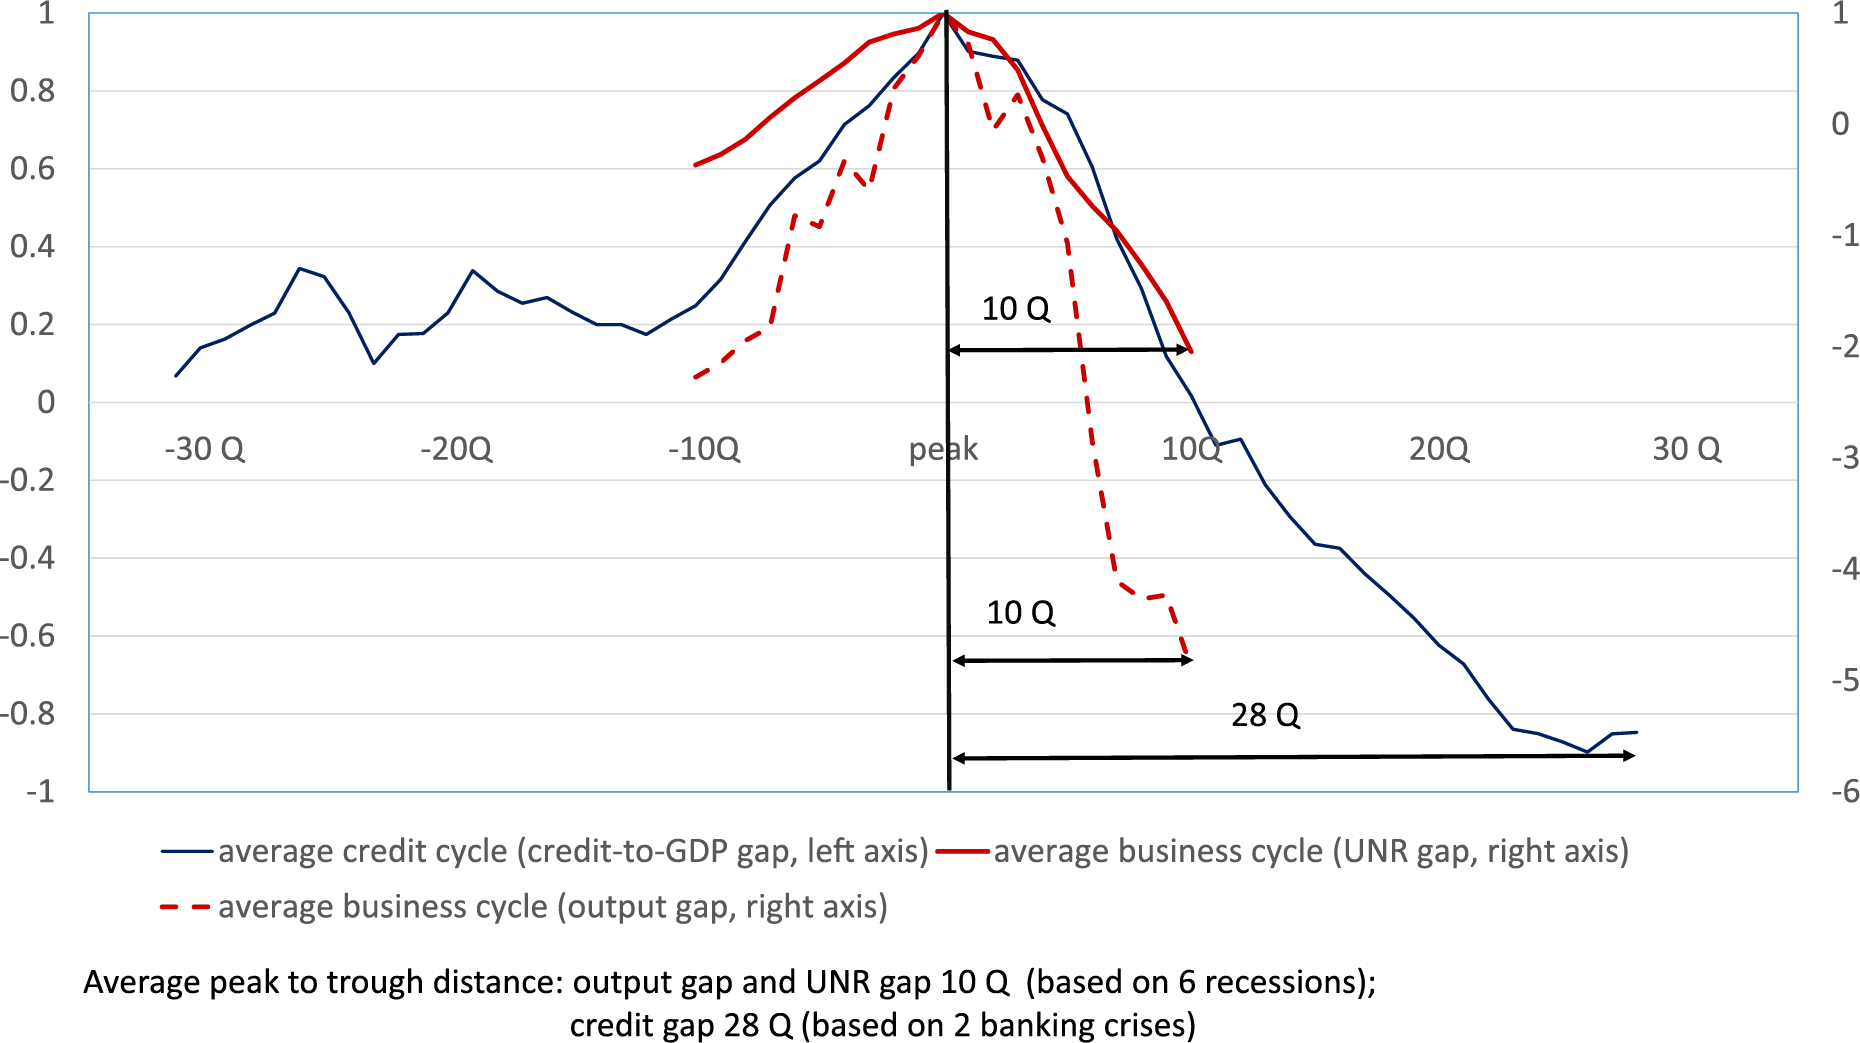 Figure 2. Average Duration of Business Cycles and Credit Cycles in the United States. See accessible link for data description.